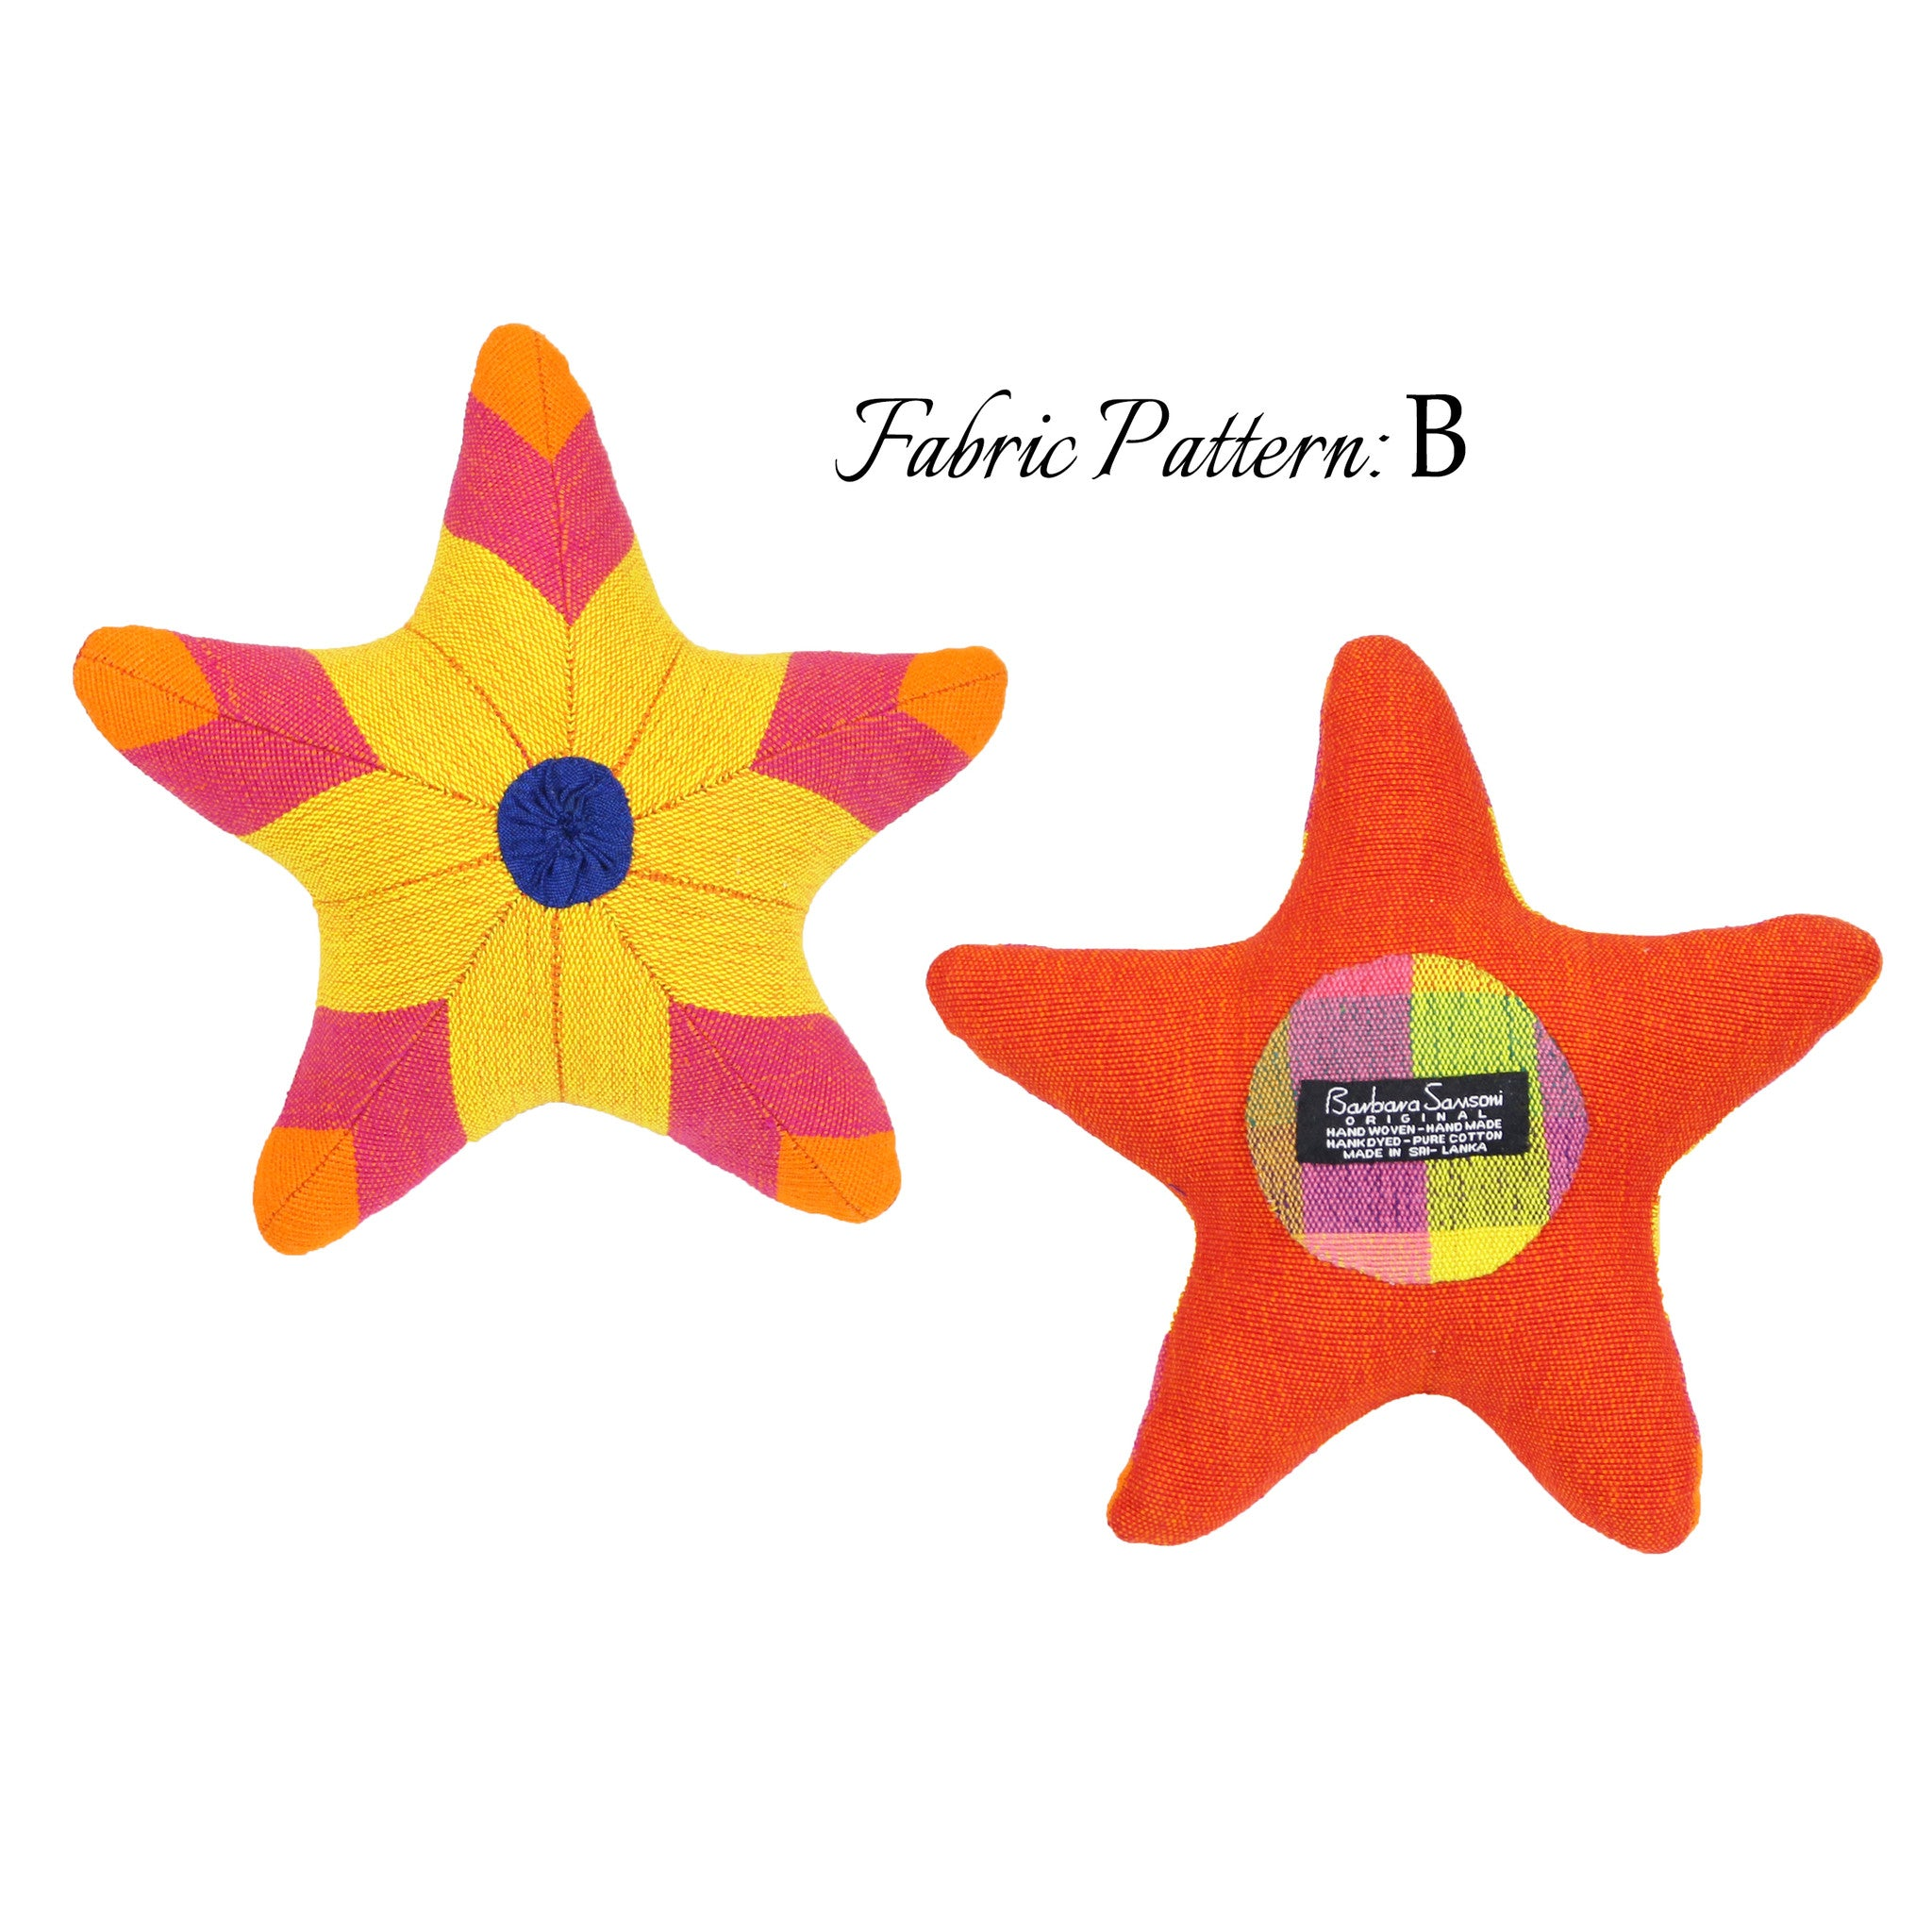 Sarah, the Starfish - pattern B (front & back view)